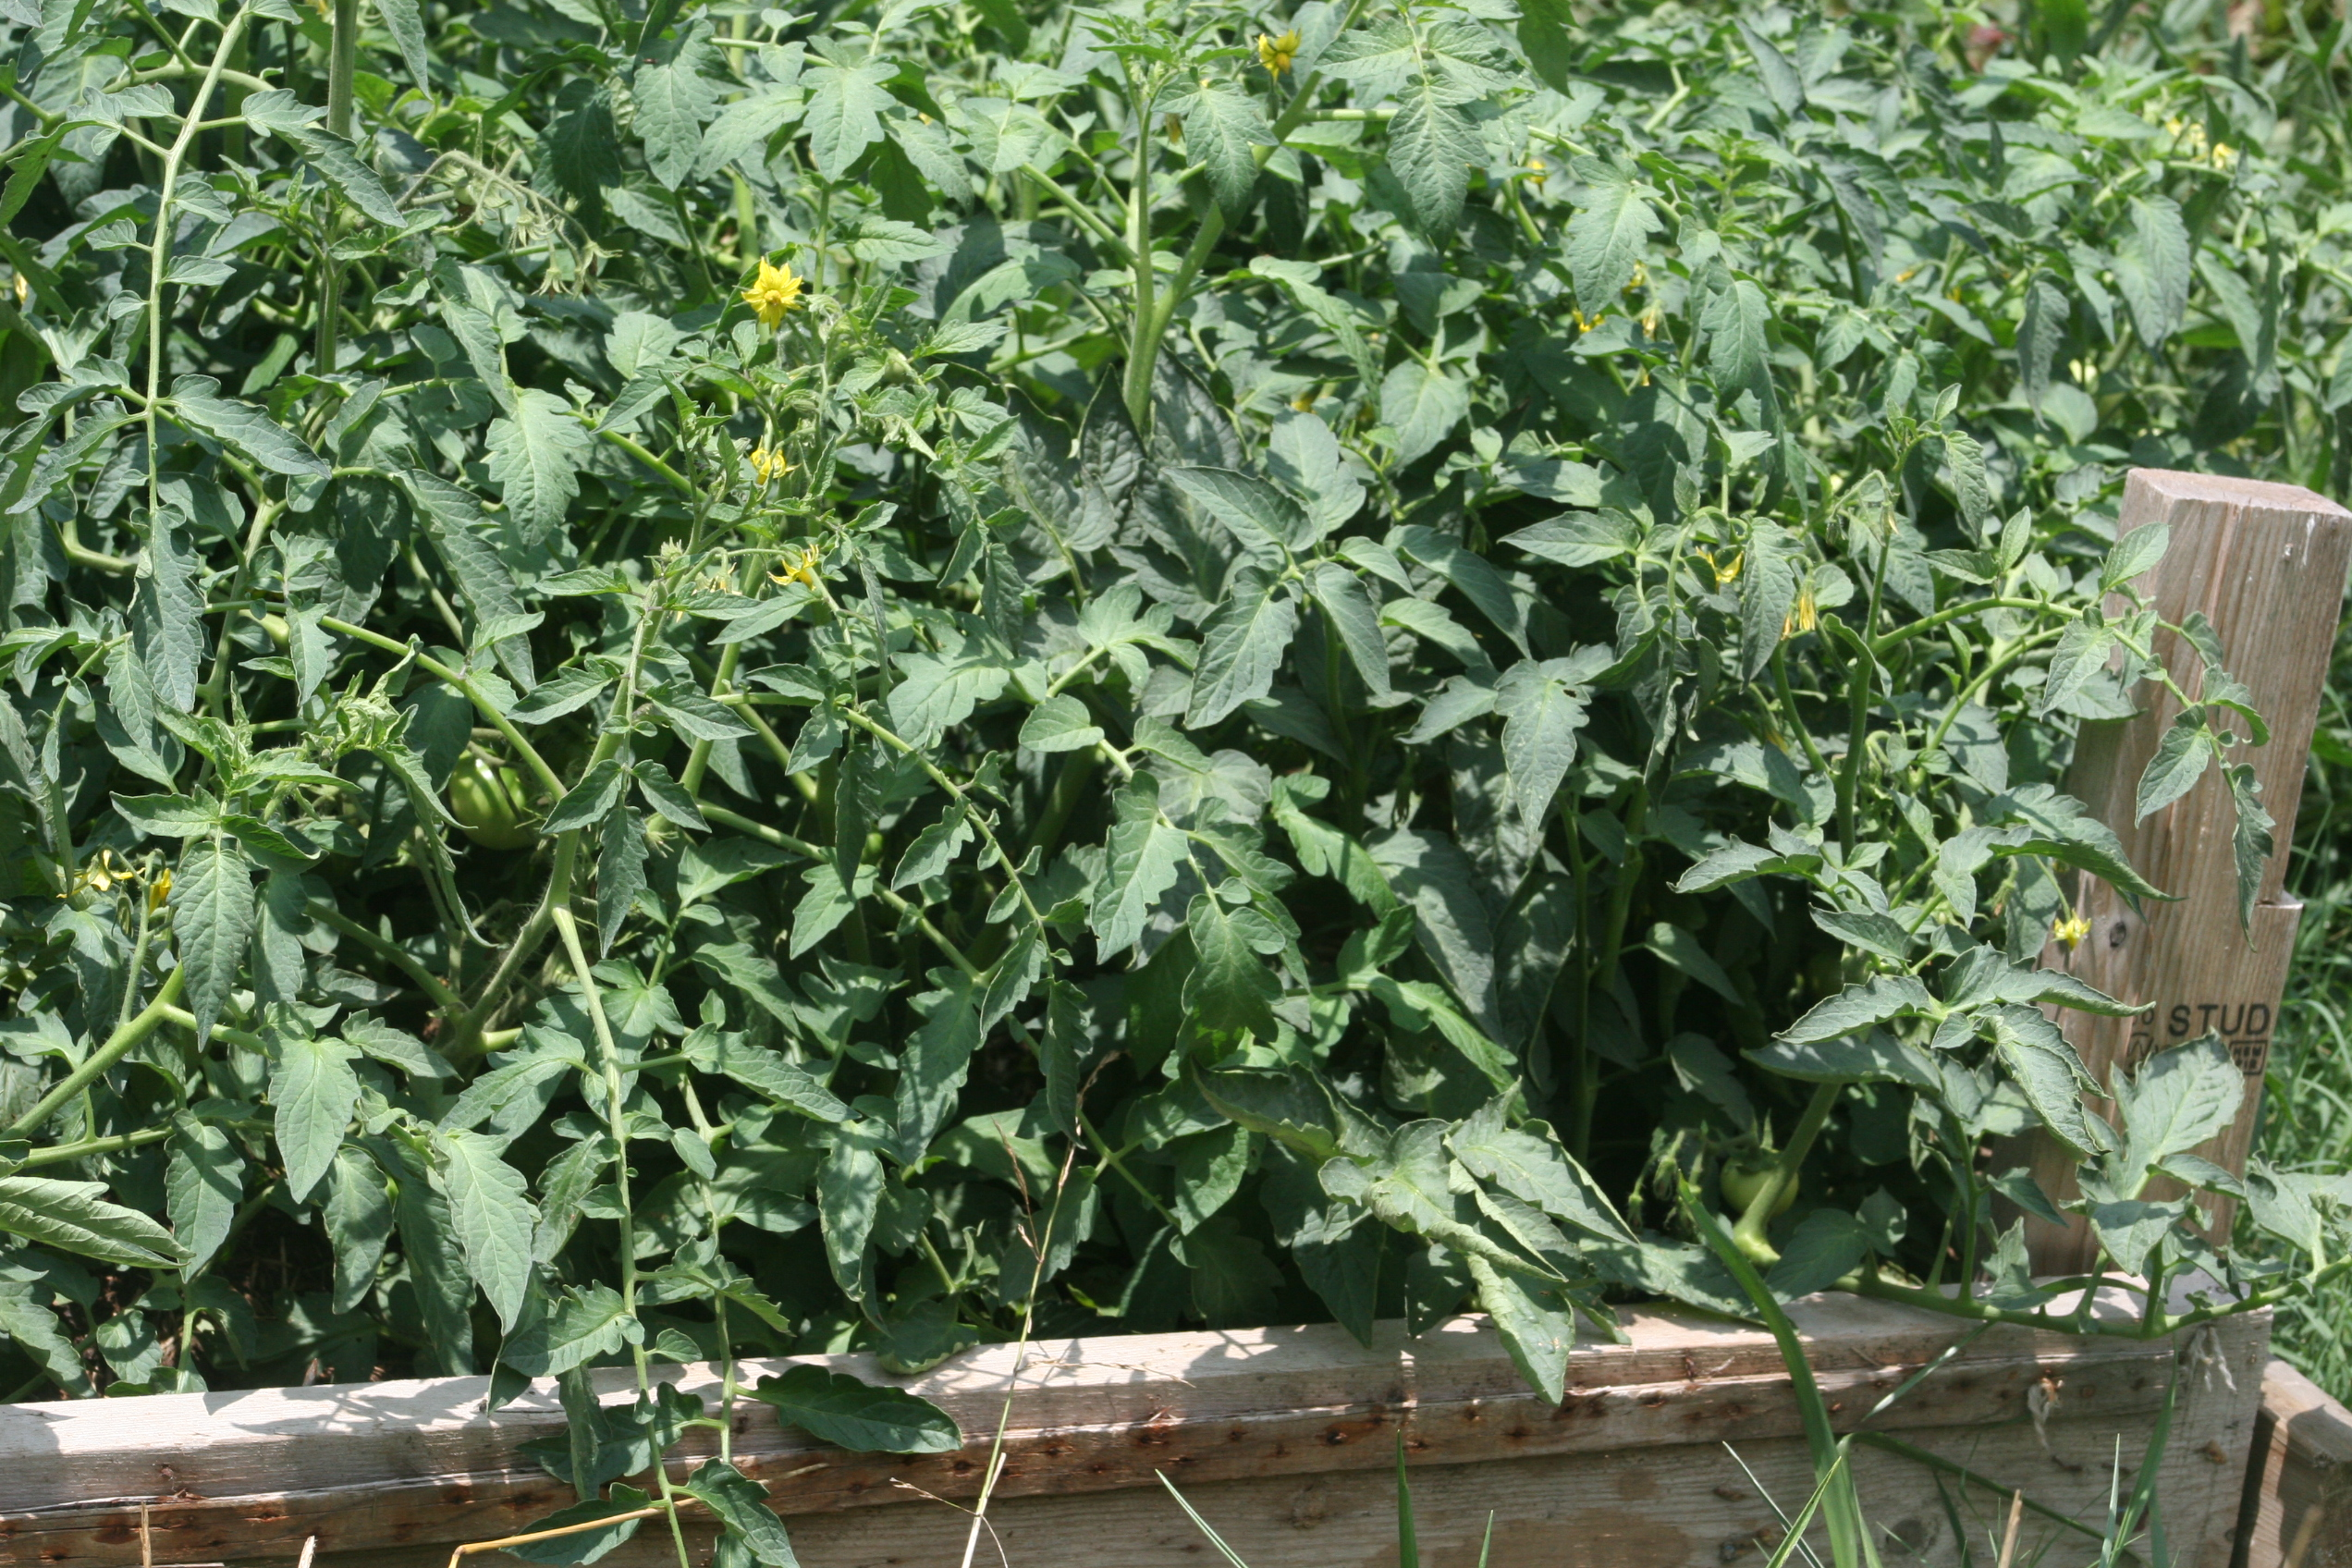 Those are tomato plants growing so thick they look like weeds!